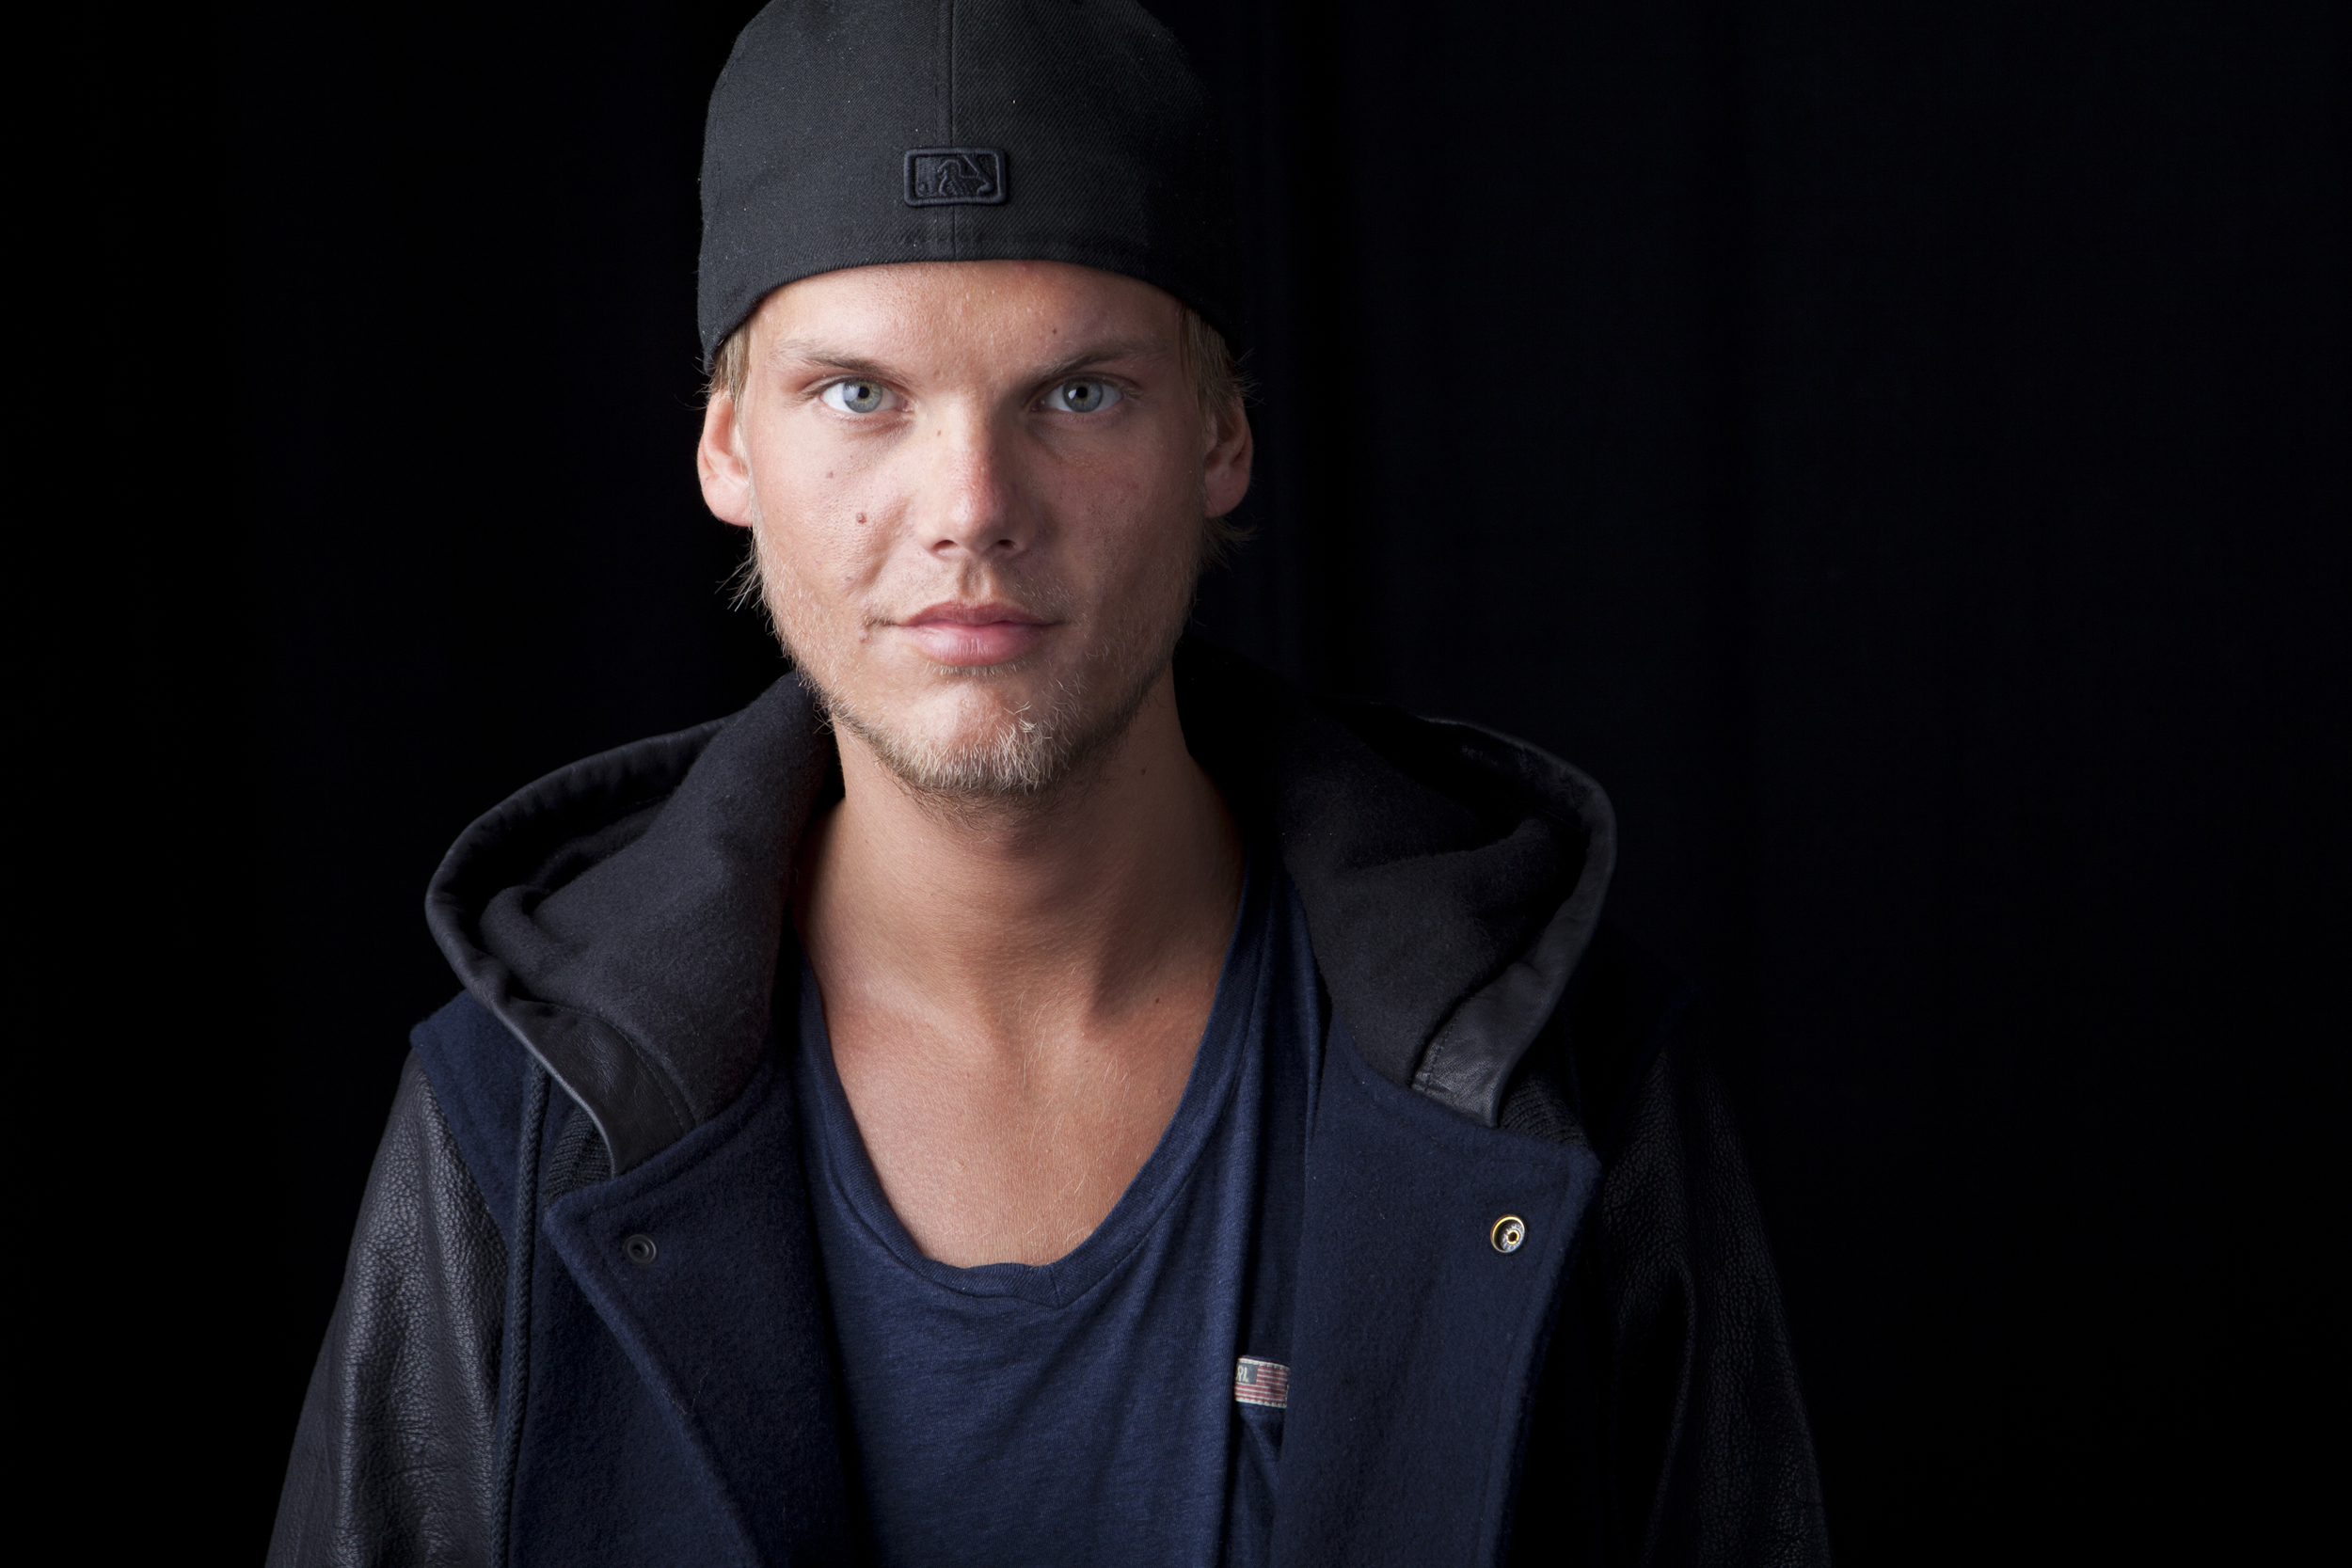 Music producer and DJ Tim Bergling died at the age of 28 years 04/21/2018 93